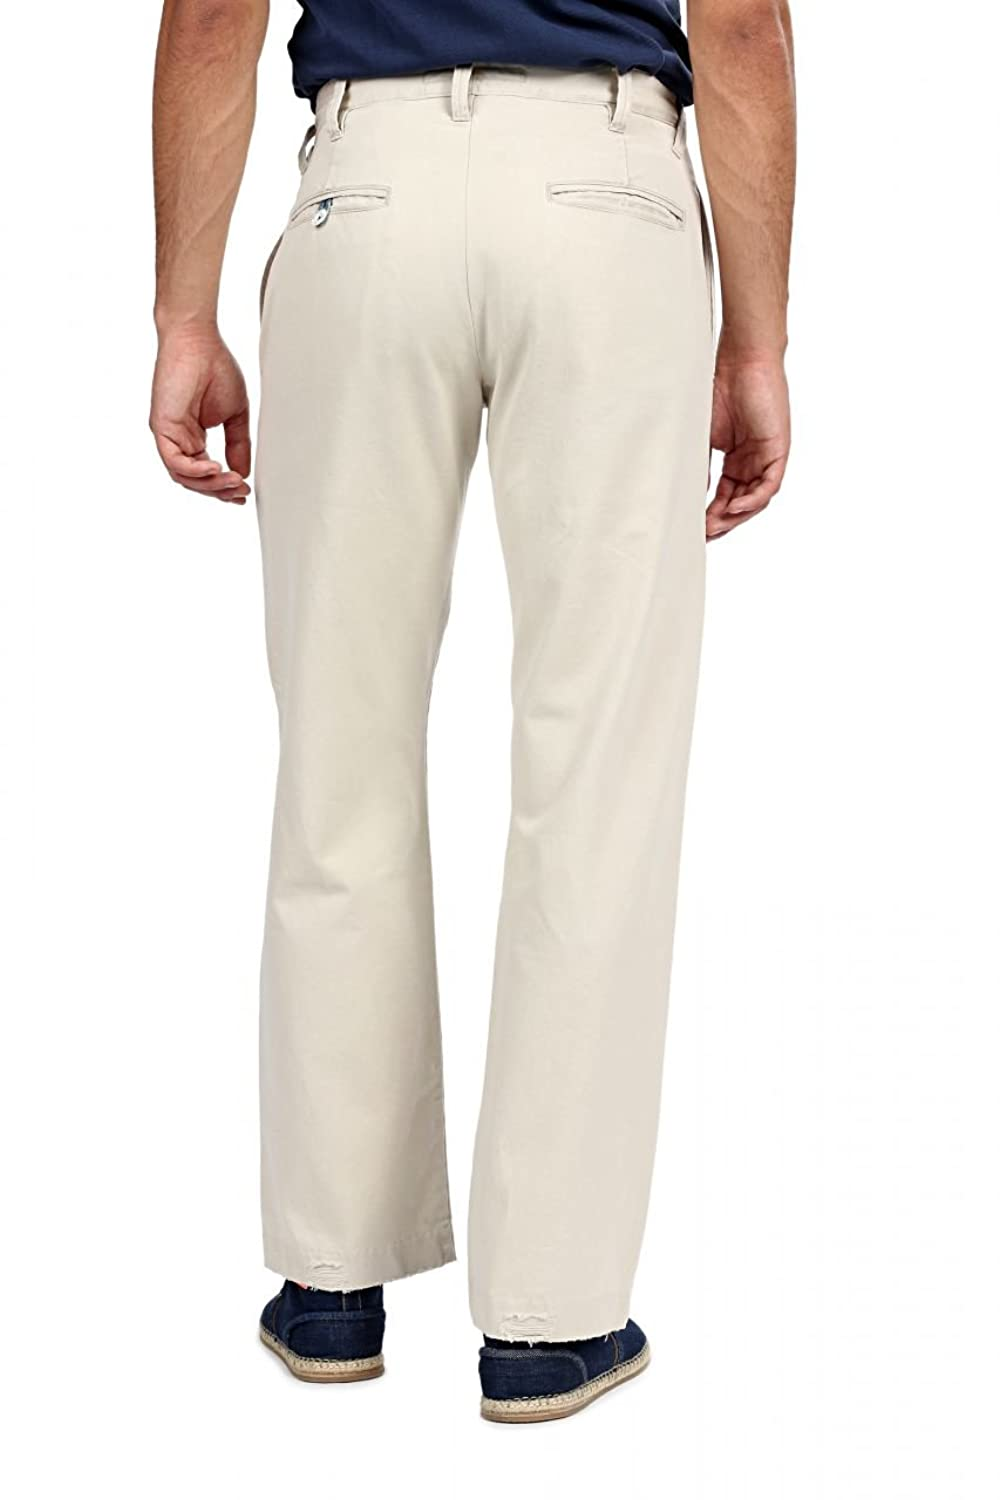 Blue Blood Chino Pants , Color: Cream